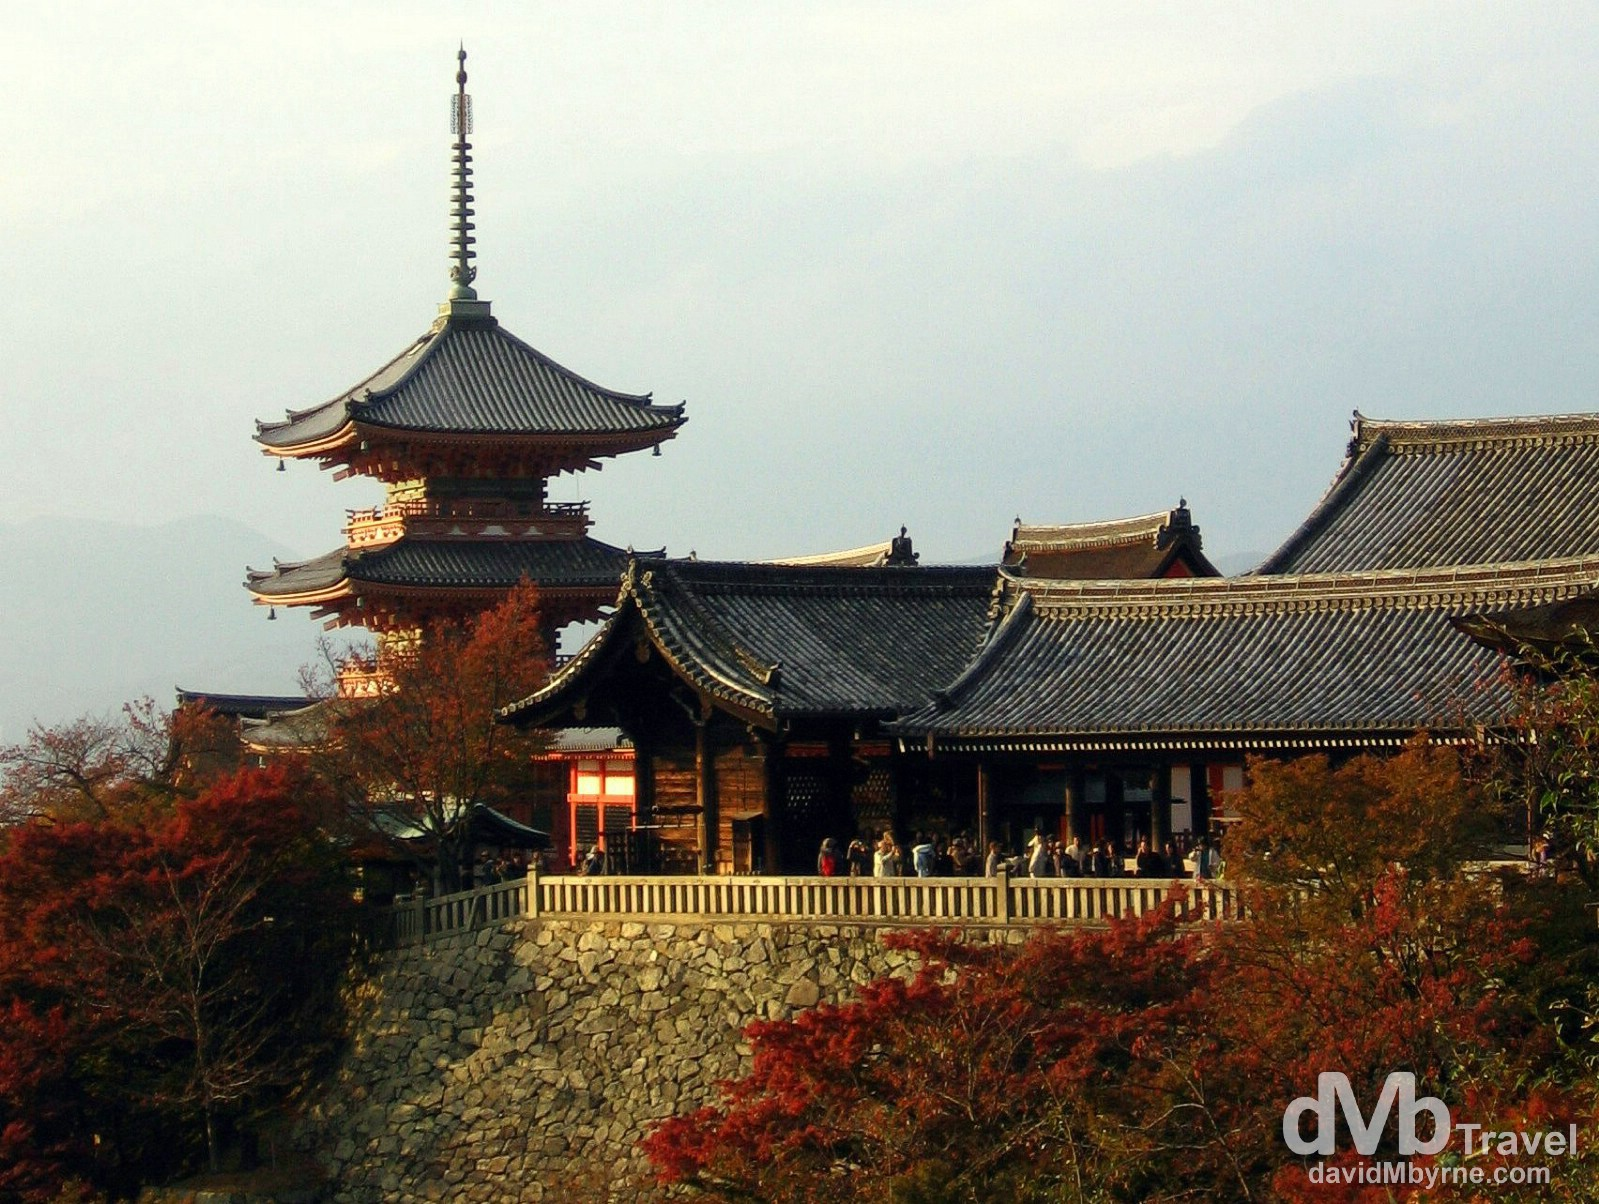 Kiyomizu-dera (Pure Water) Temple, Kyoto, Japan. November 20th 2007.